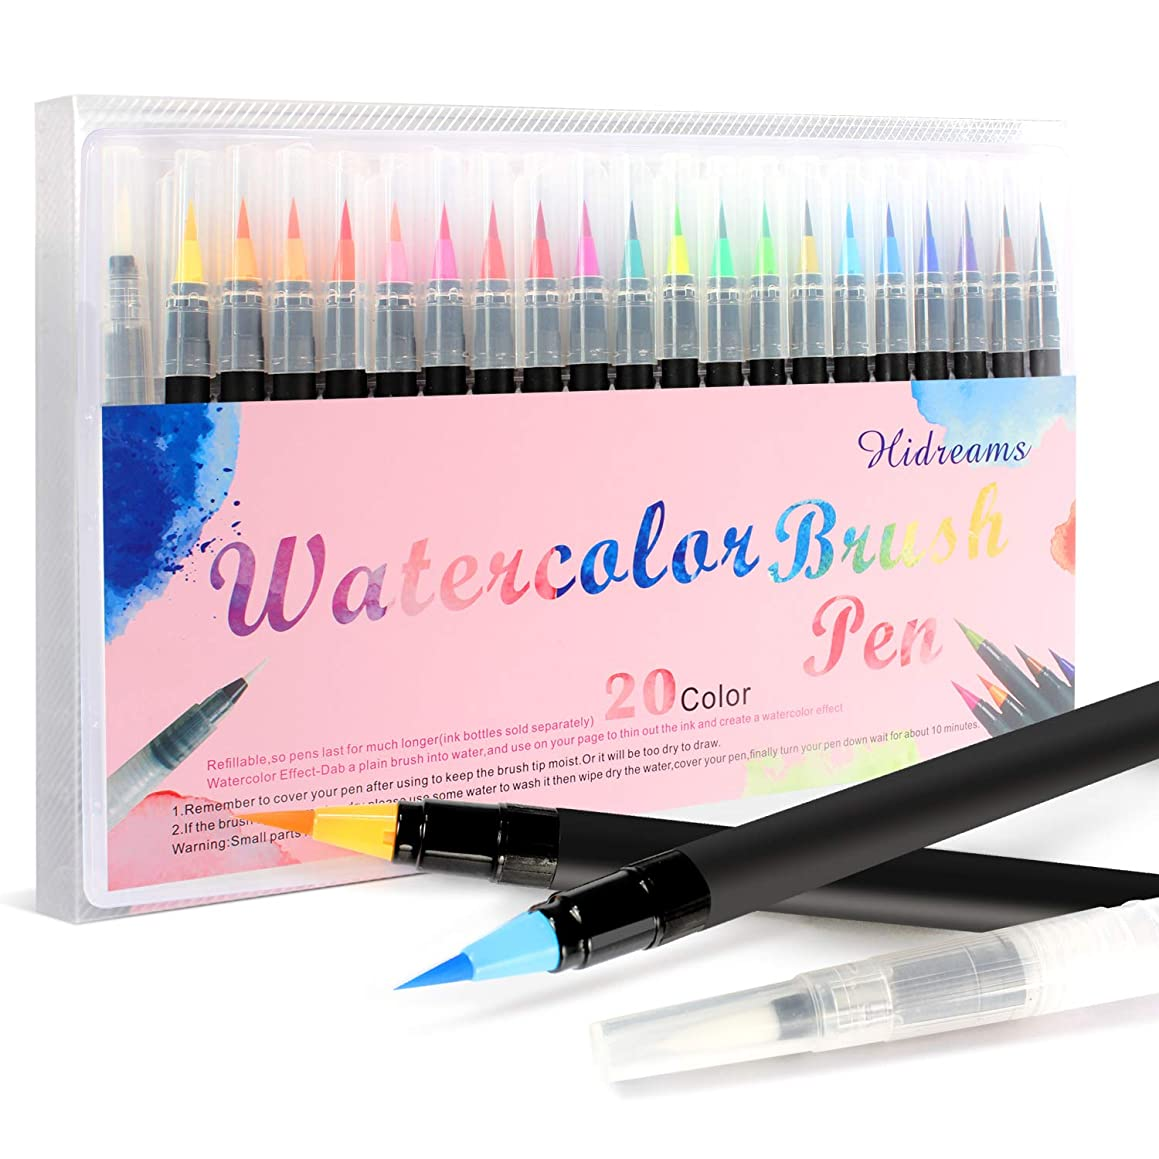 Hidreams 20 Colors Watercolor Markers Brush Pen Set,Watercolor Brush Pens with Soft Flexible Tip, Water Soluble for Adult Coloring Books Manga Comic